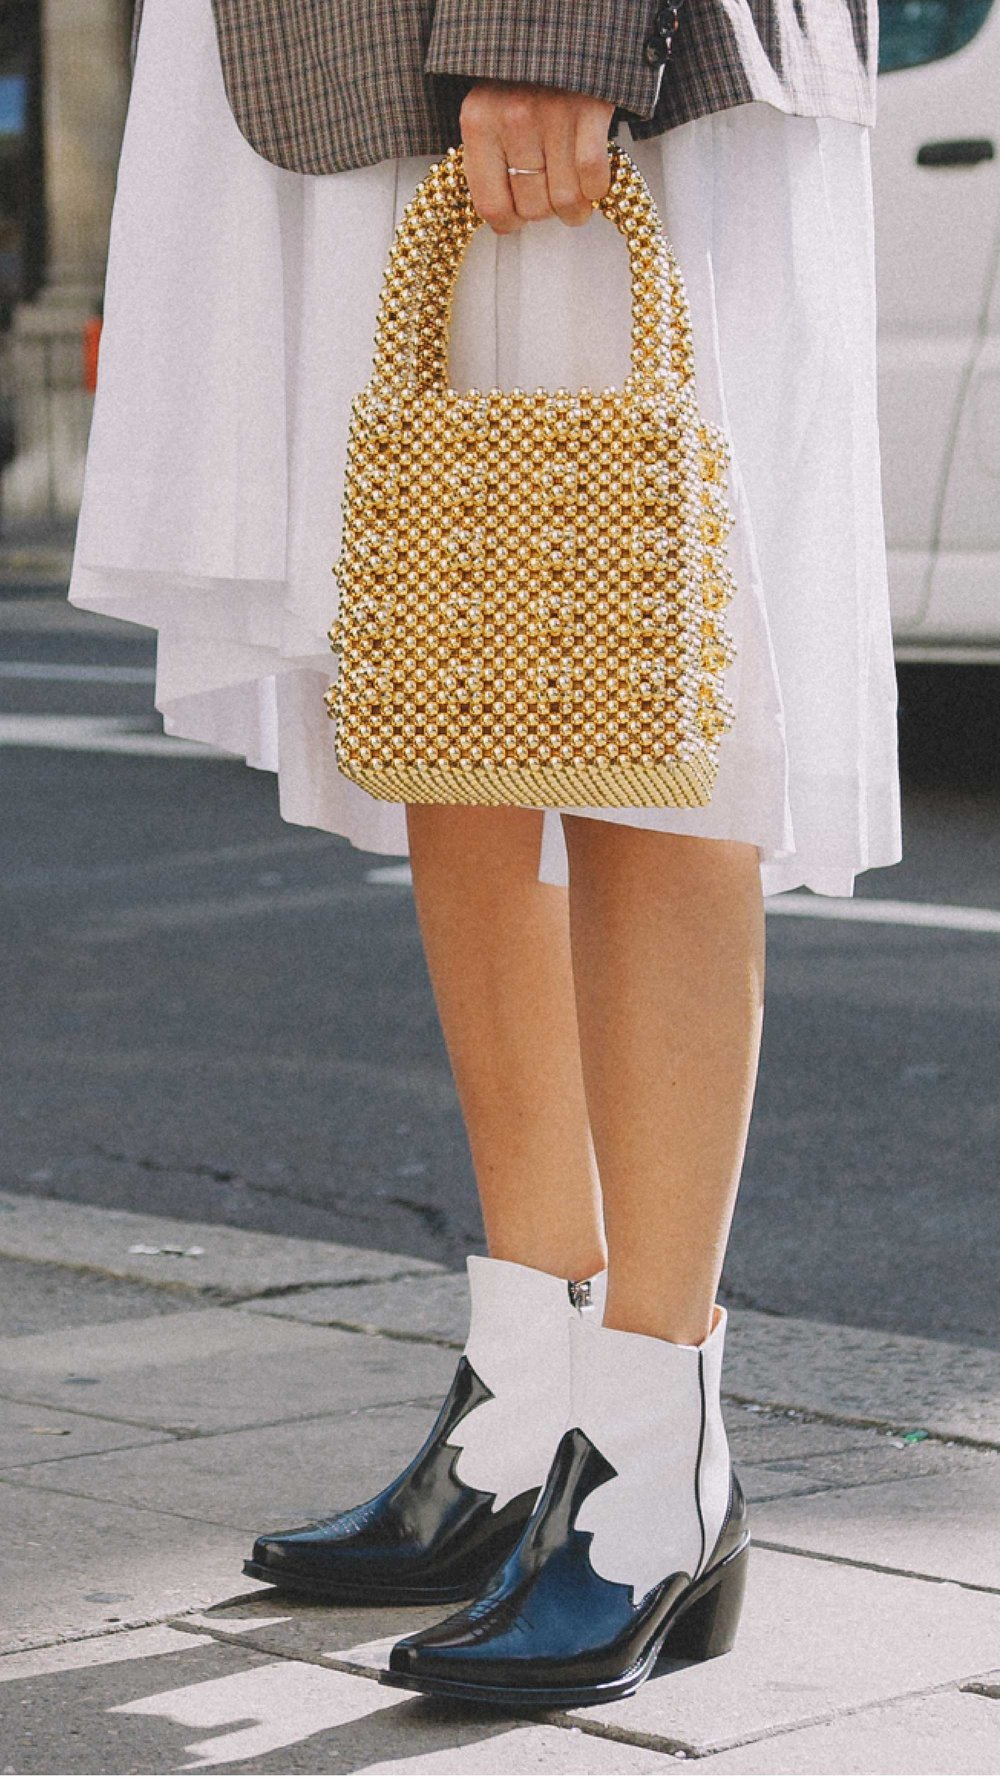 London Fashion Week Street Style Photos Day One SS18 Outfit Inspiration2.jpg